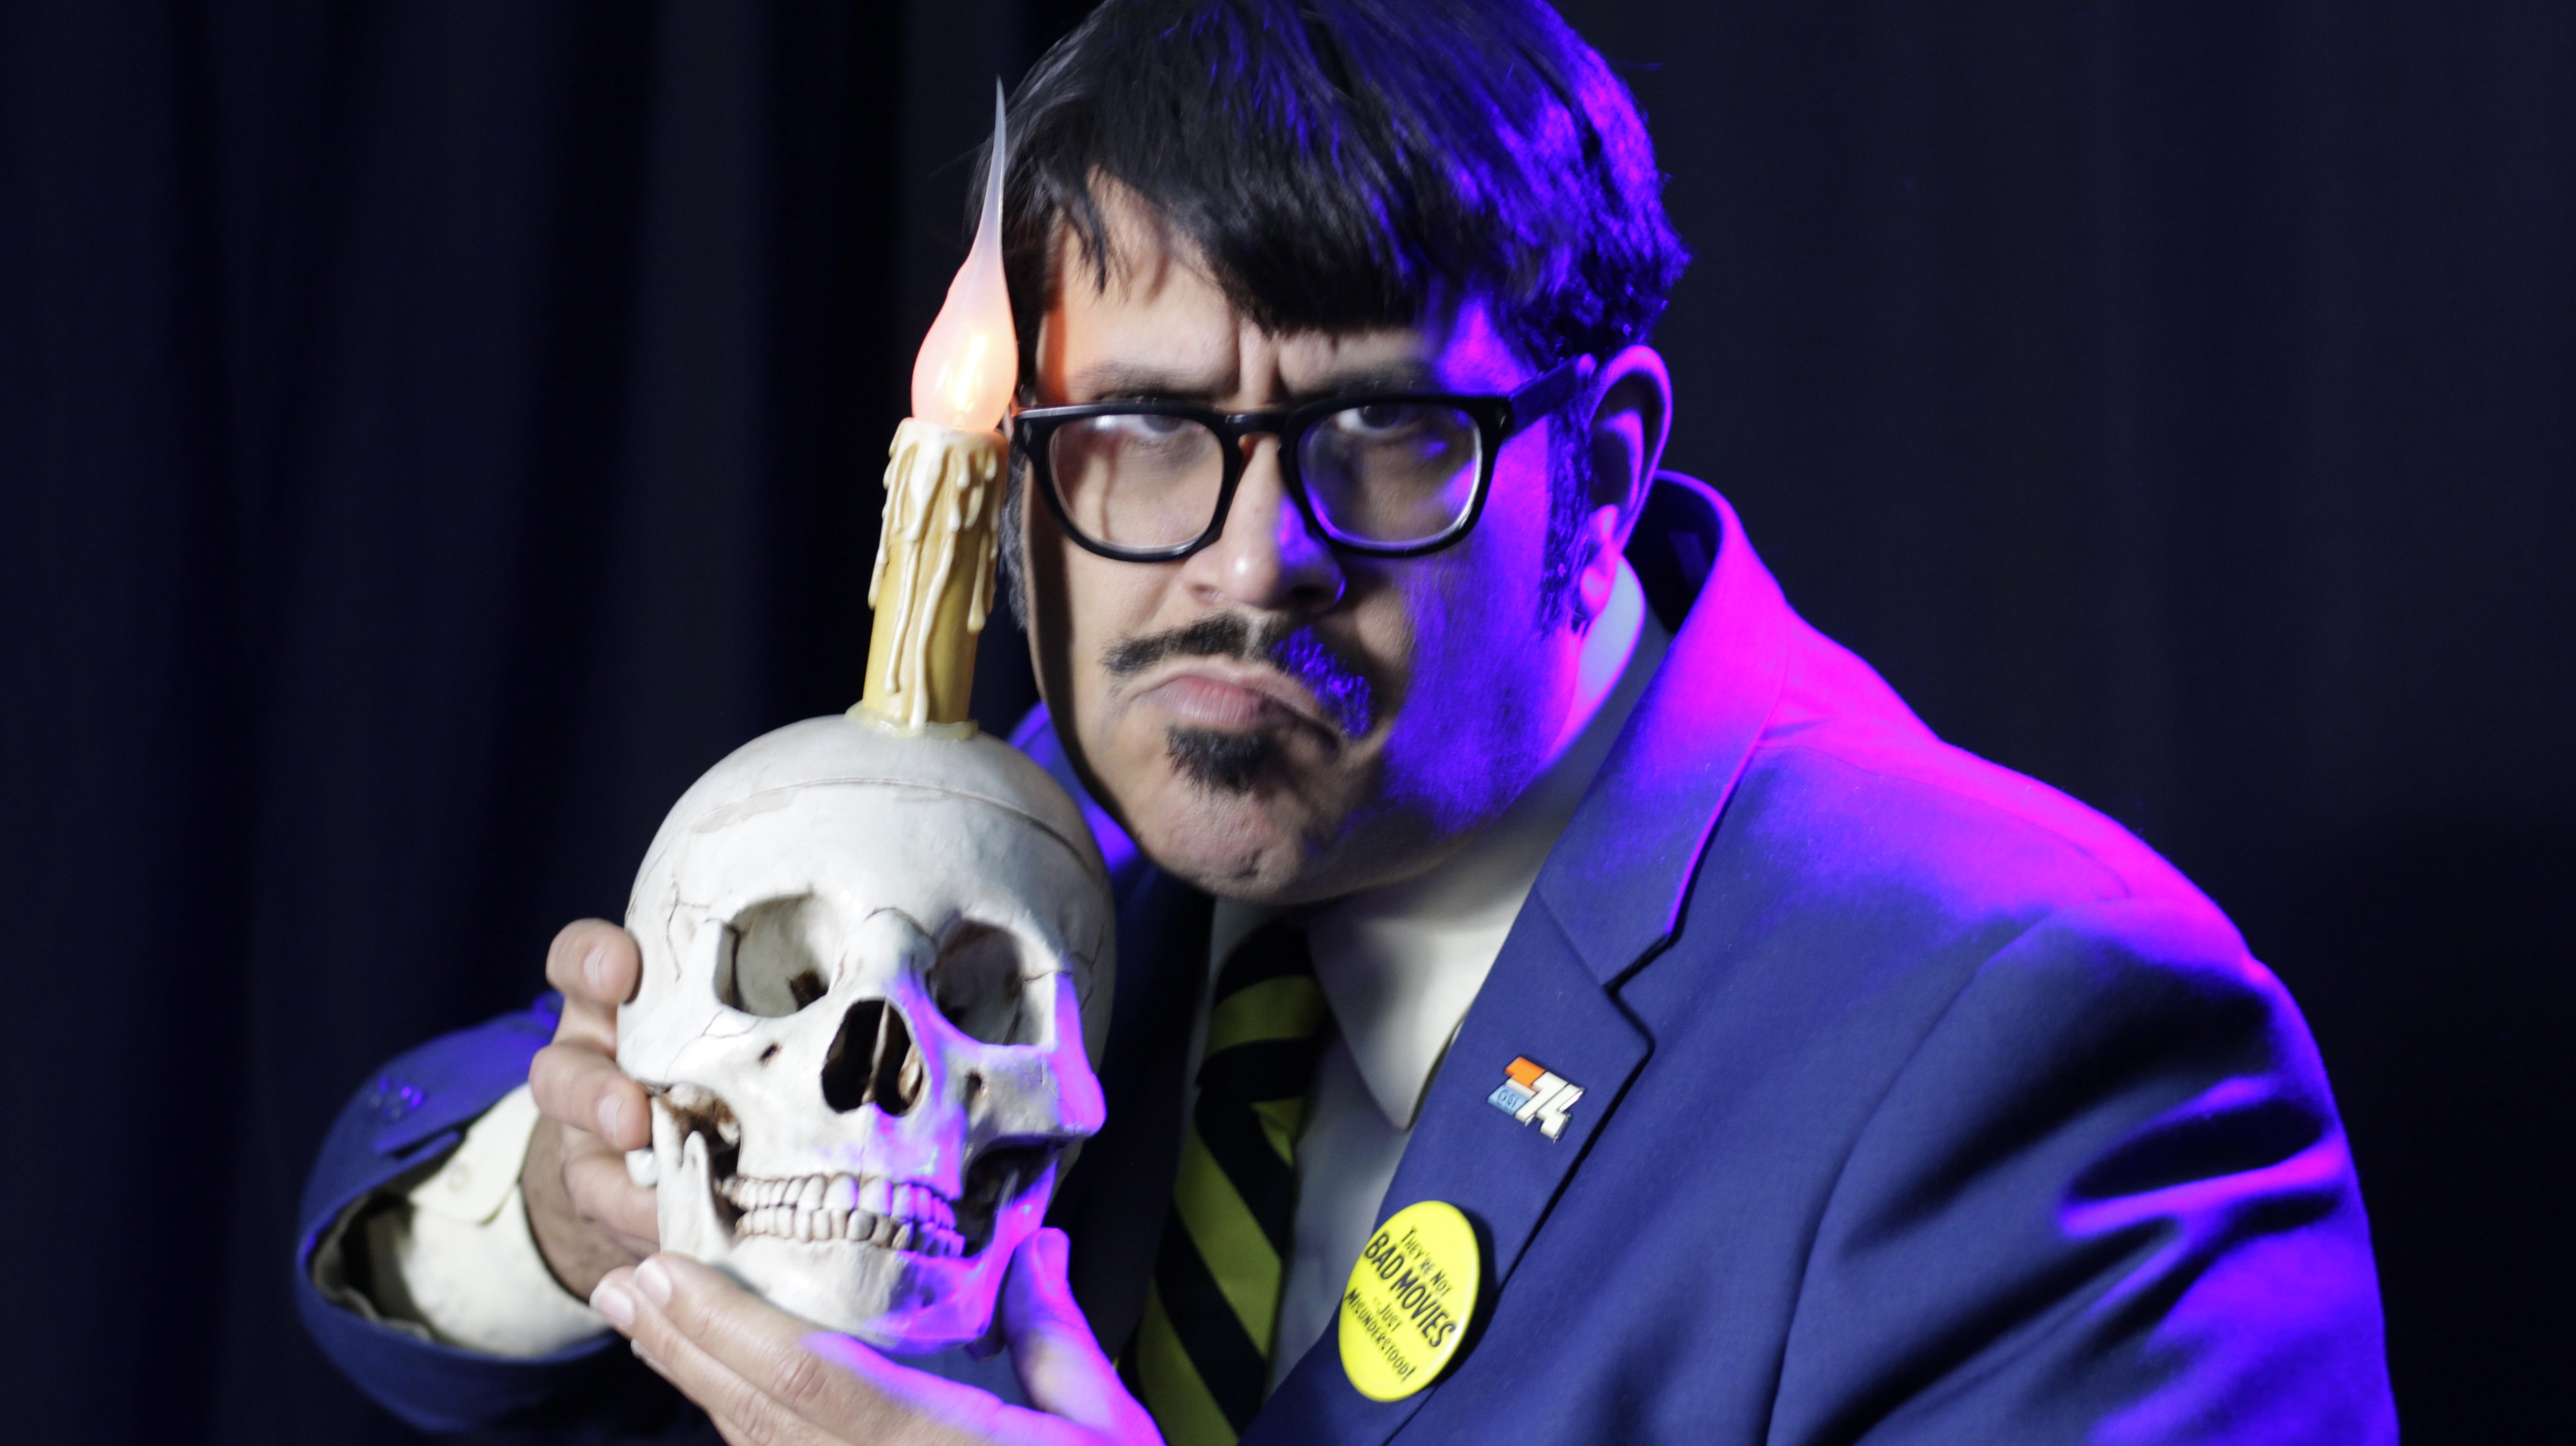 Mr.Lobo, Host Of Cinema Insomnia, Inducted Into The Horror Host Hall Of Fame